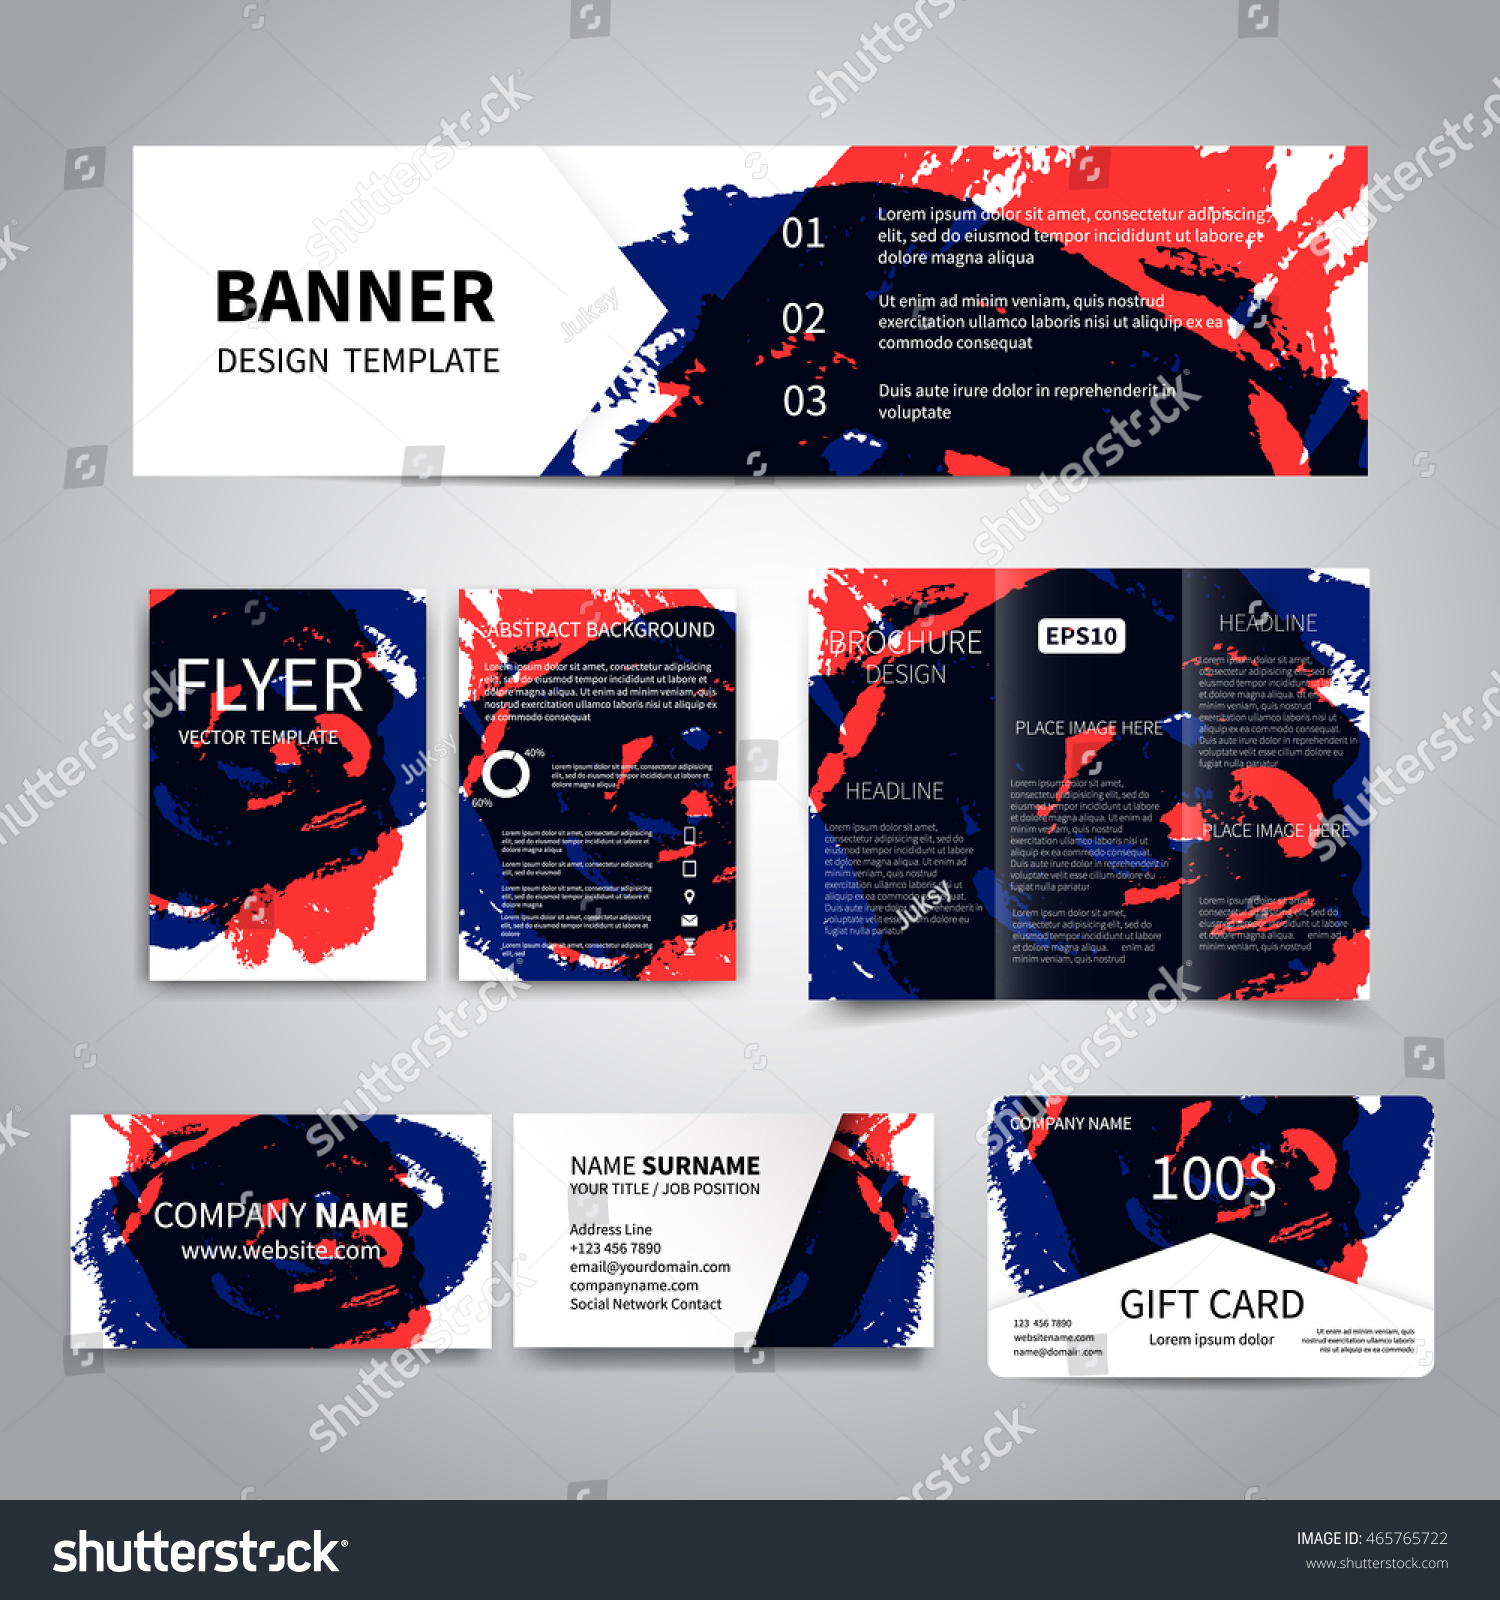 Banner Flyers Brochure Business Cards Gift Stock Photo (Photo ...